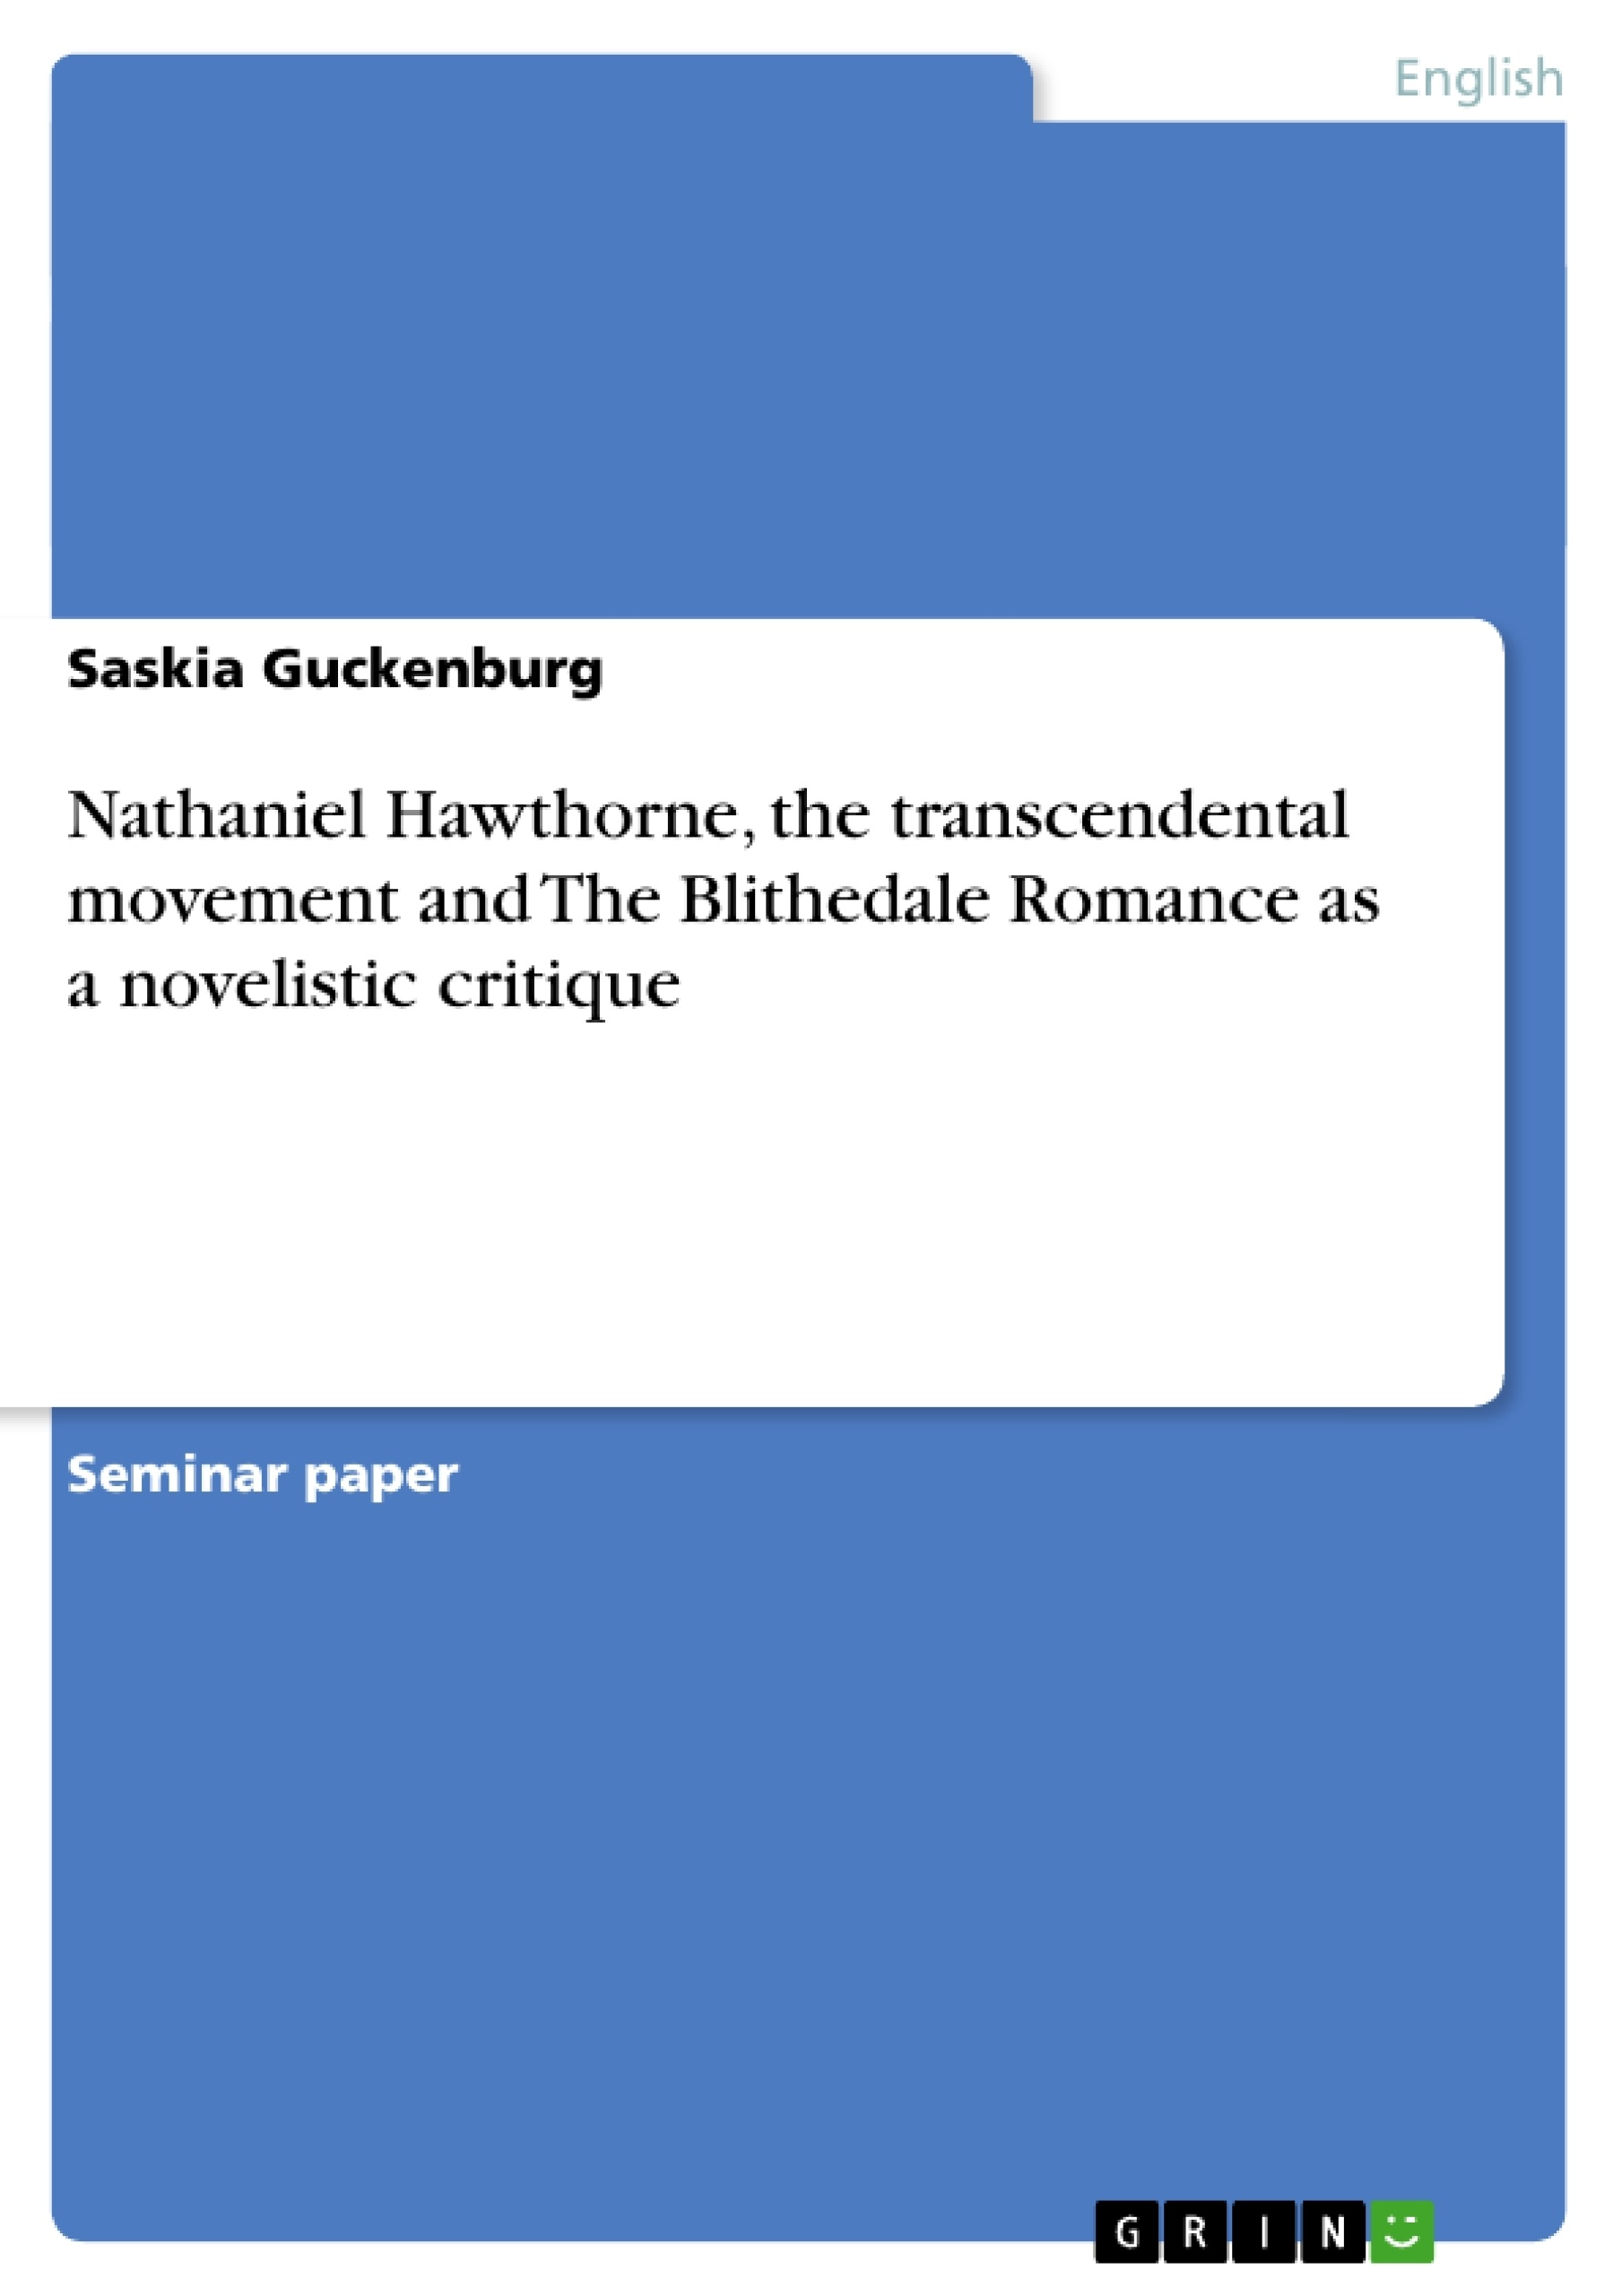 Title: Nathaniel Hawthorne, the transcendental movement and The Blithedale Romance as a novelistic critique